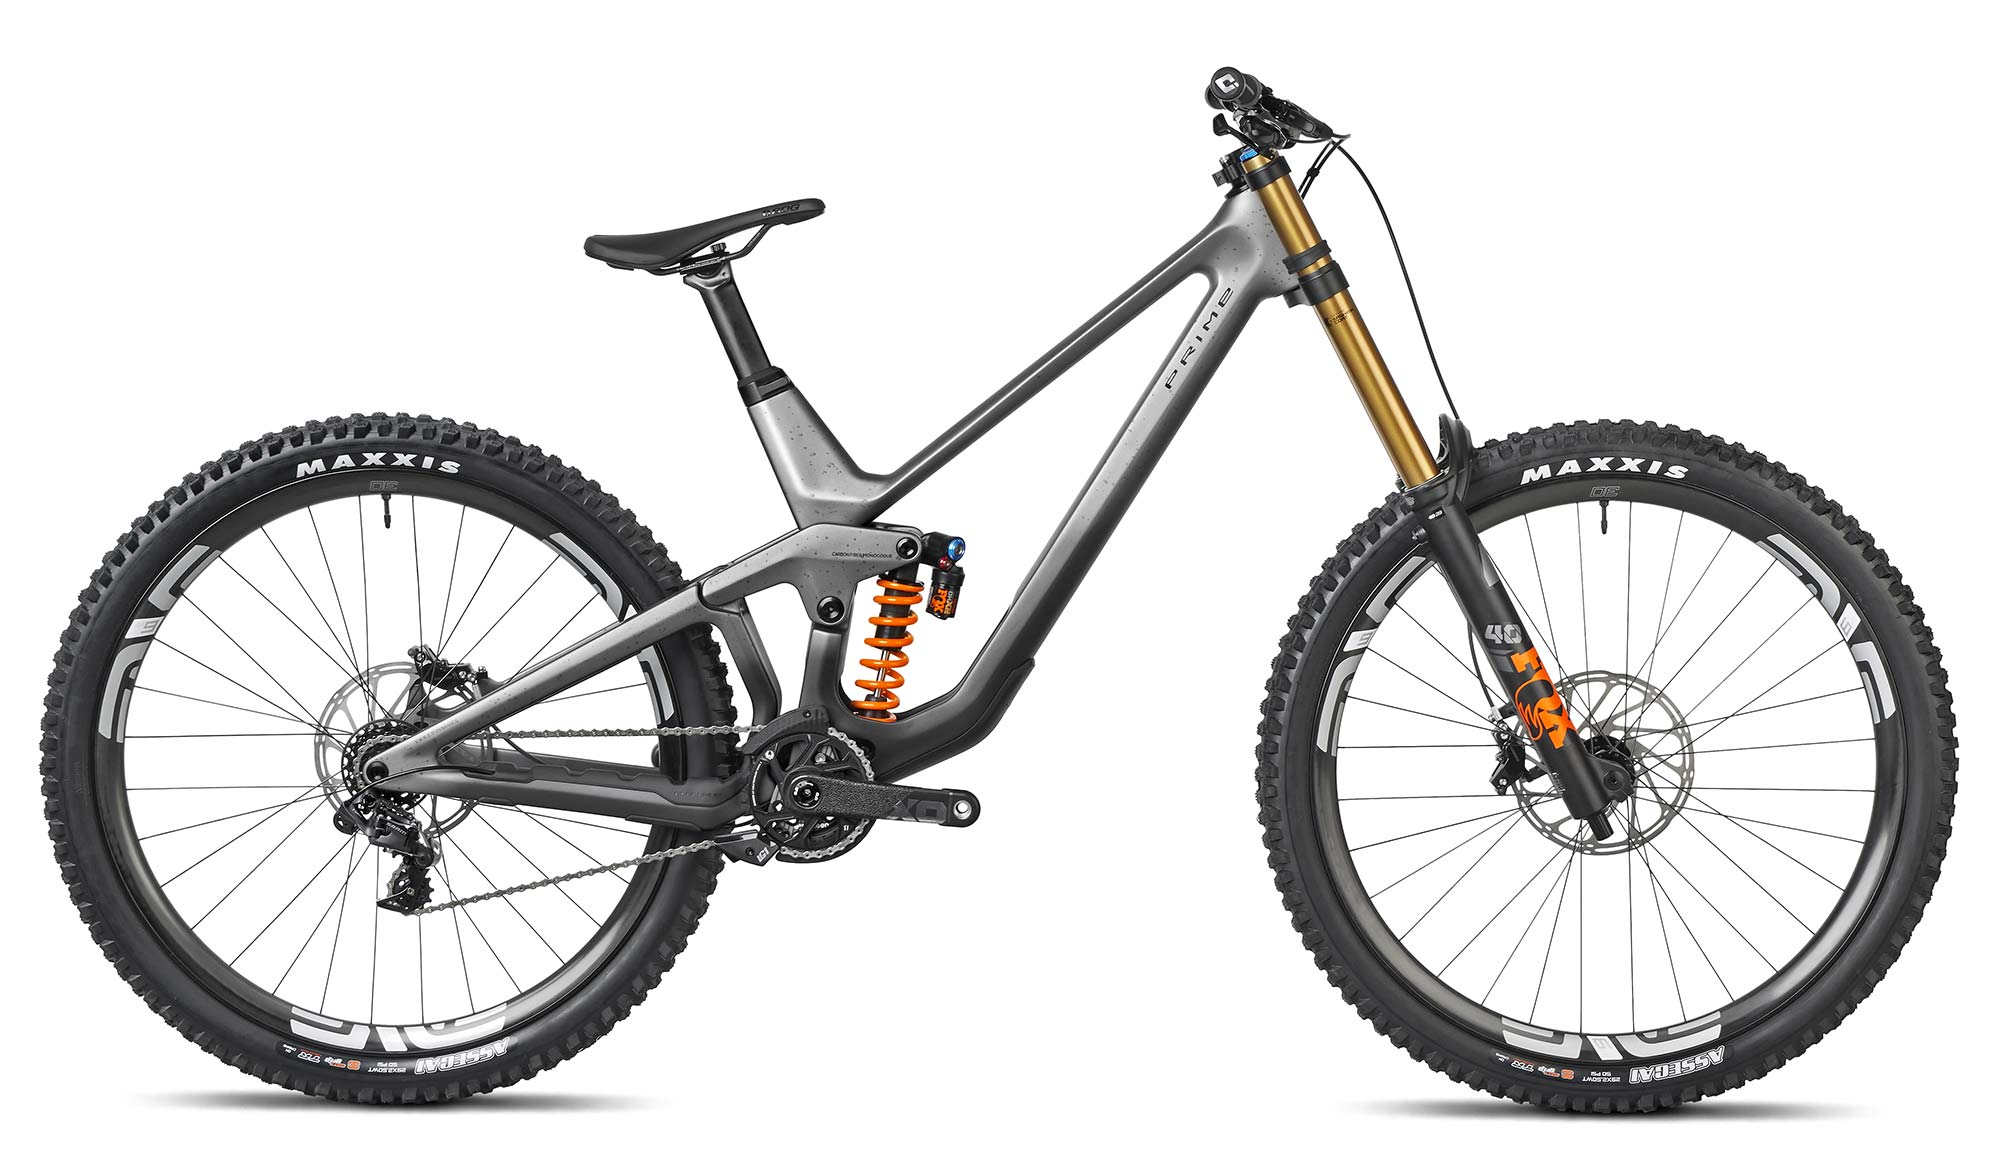 2021 Prime Rocket DH bike, affordable consumer-direct carbon 29er downhill mountain bike,RS complete